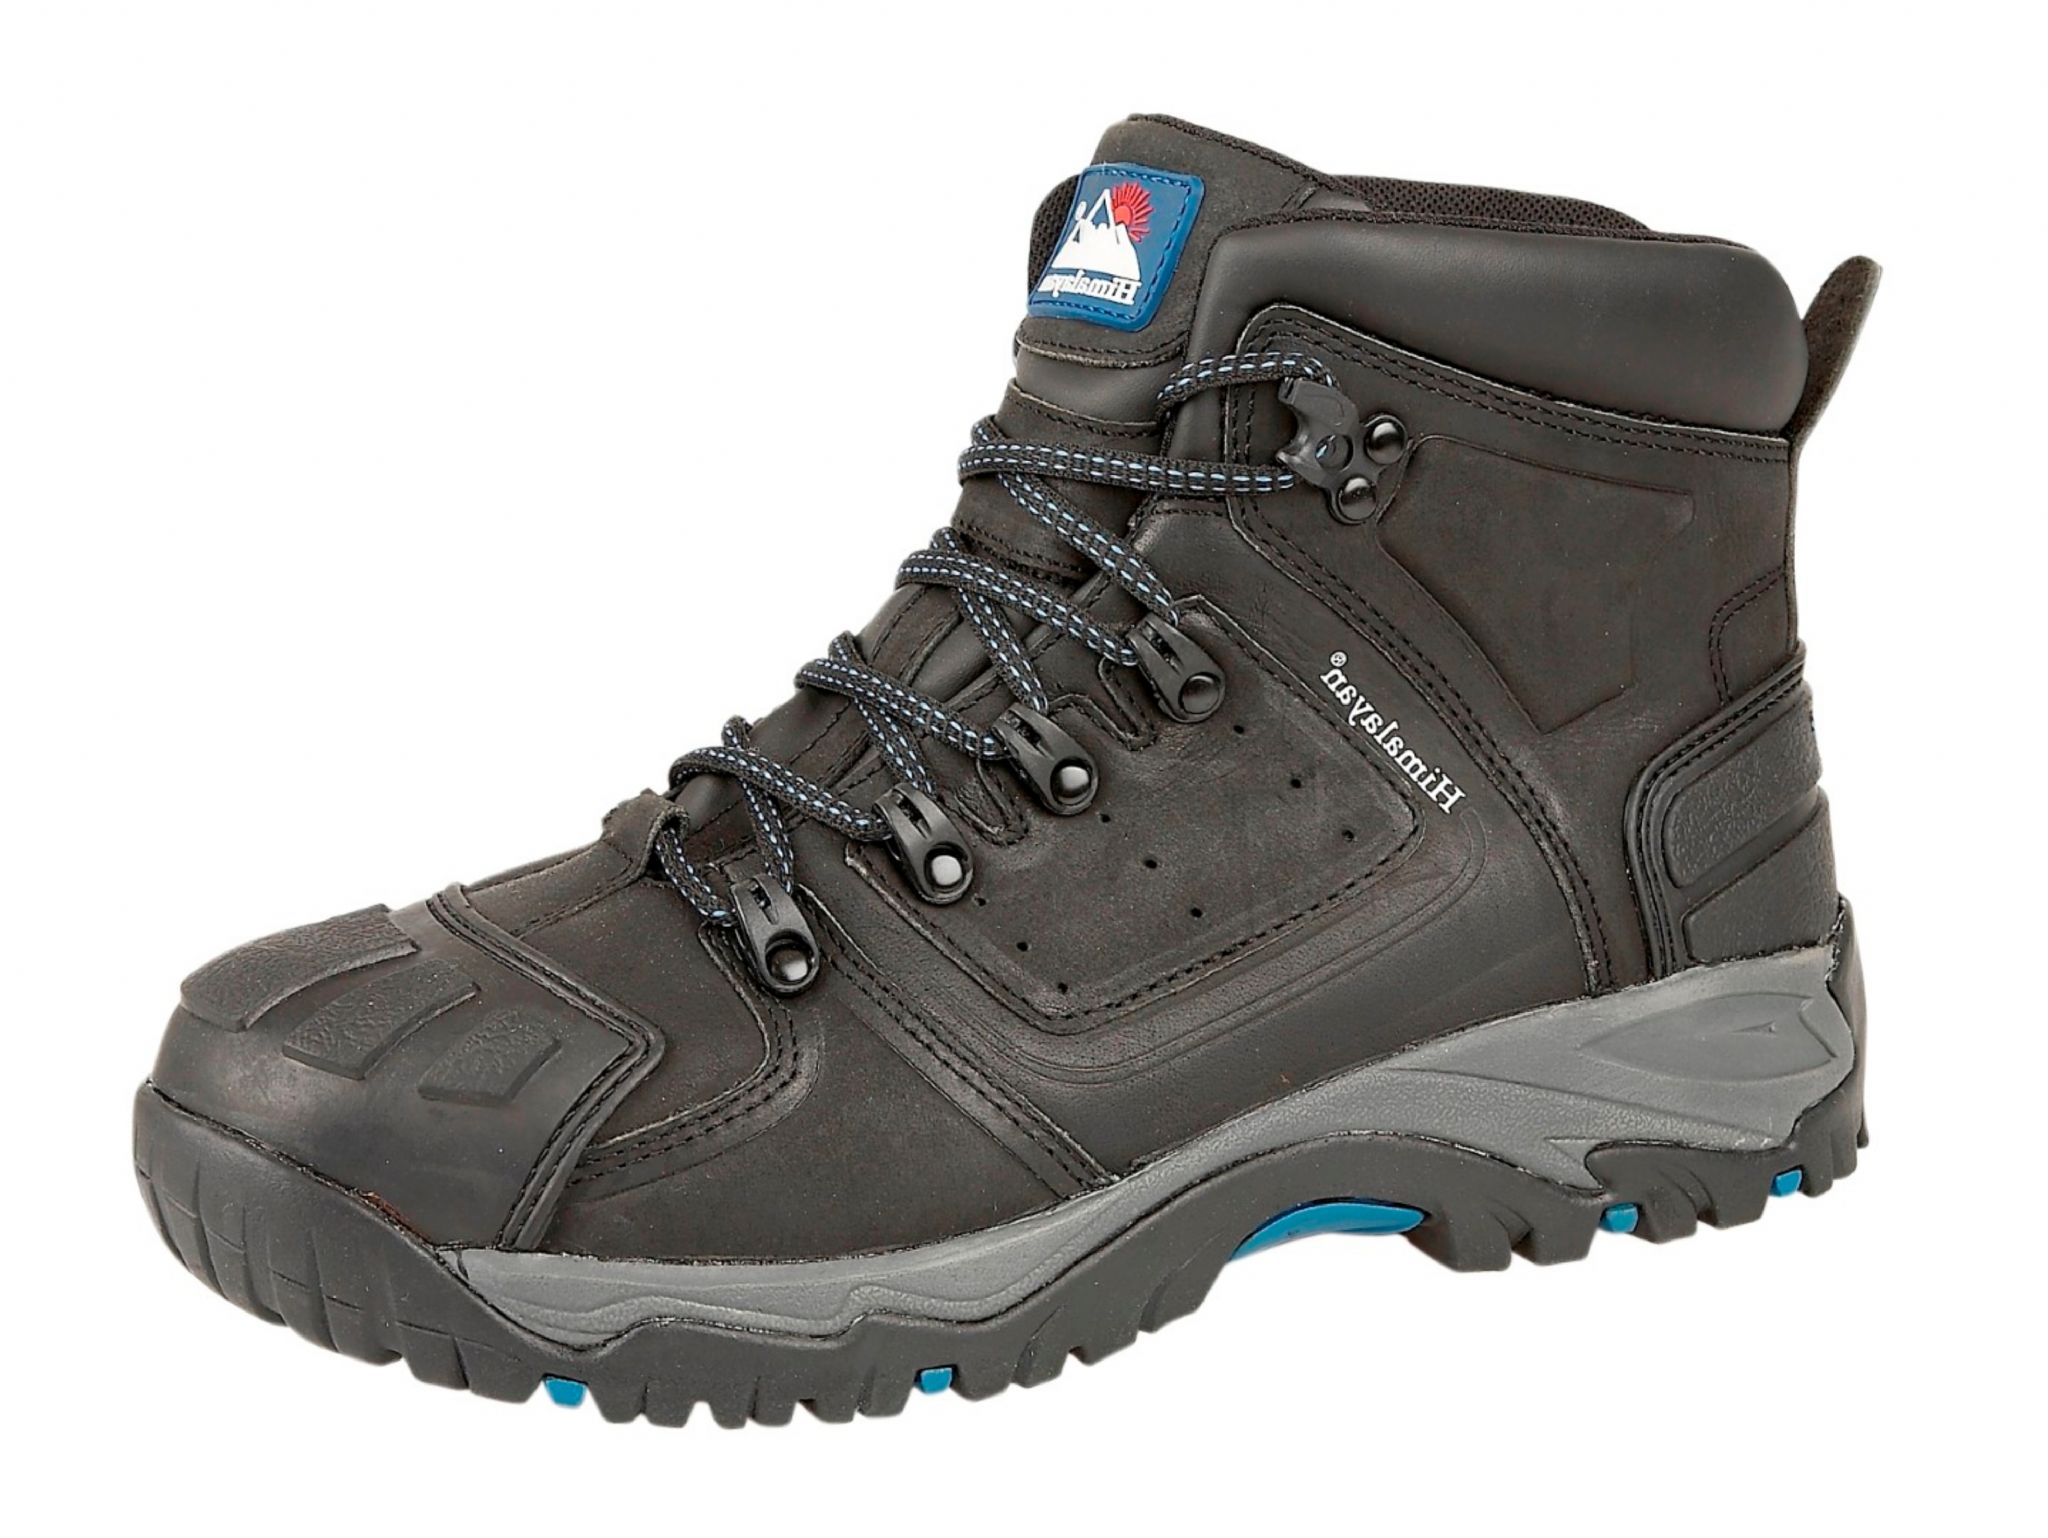 HIMALAYAN wasterproof Safety BOOTs w/Steel Toe Cap